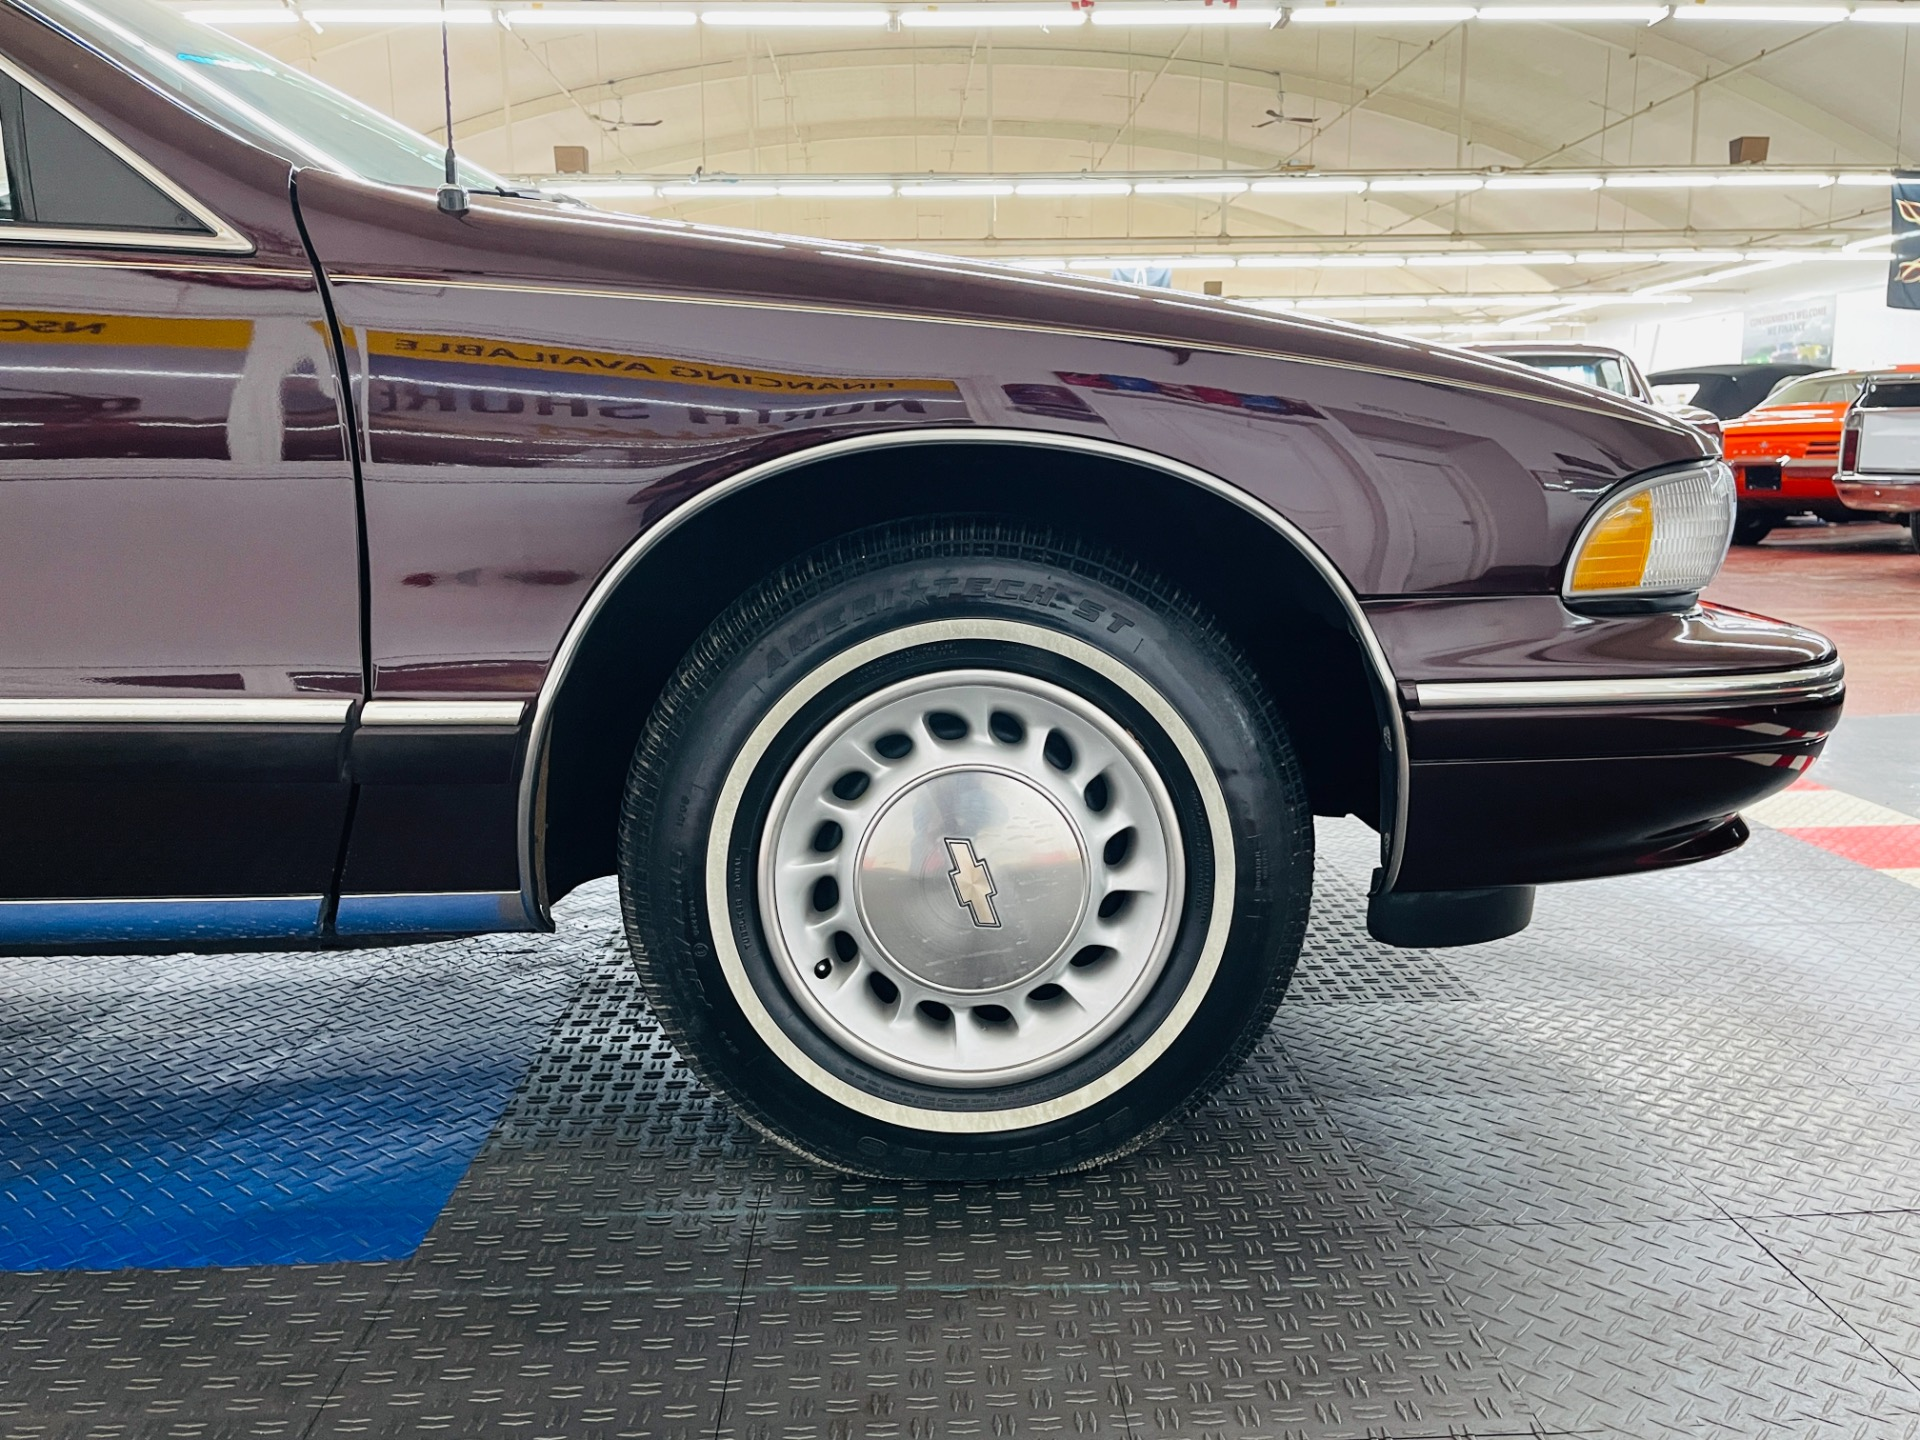 Used 1994 Chevrolet Caprice - ONE FAMILY OWNED SINCE NEW - LIKE NEW CONDITION - SEE VIDEO - | Mundelein, IL